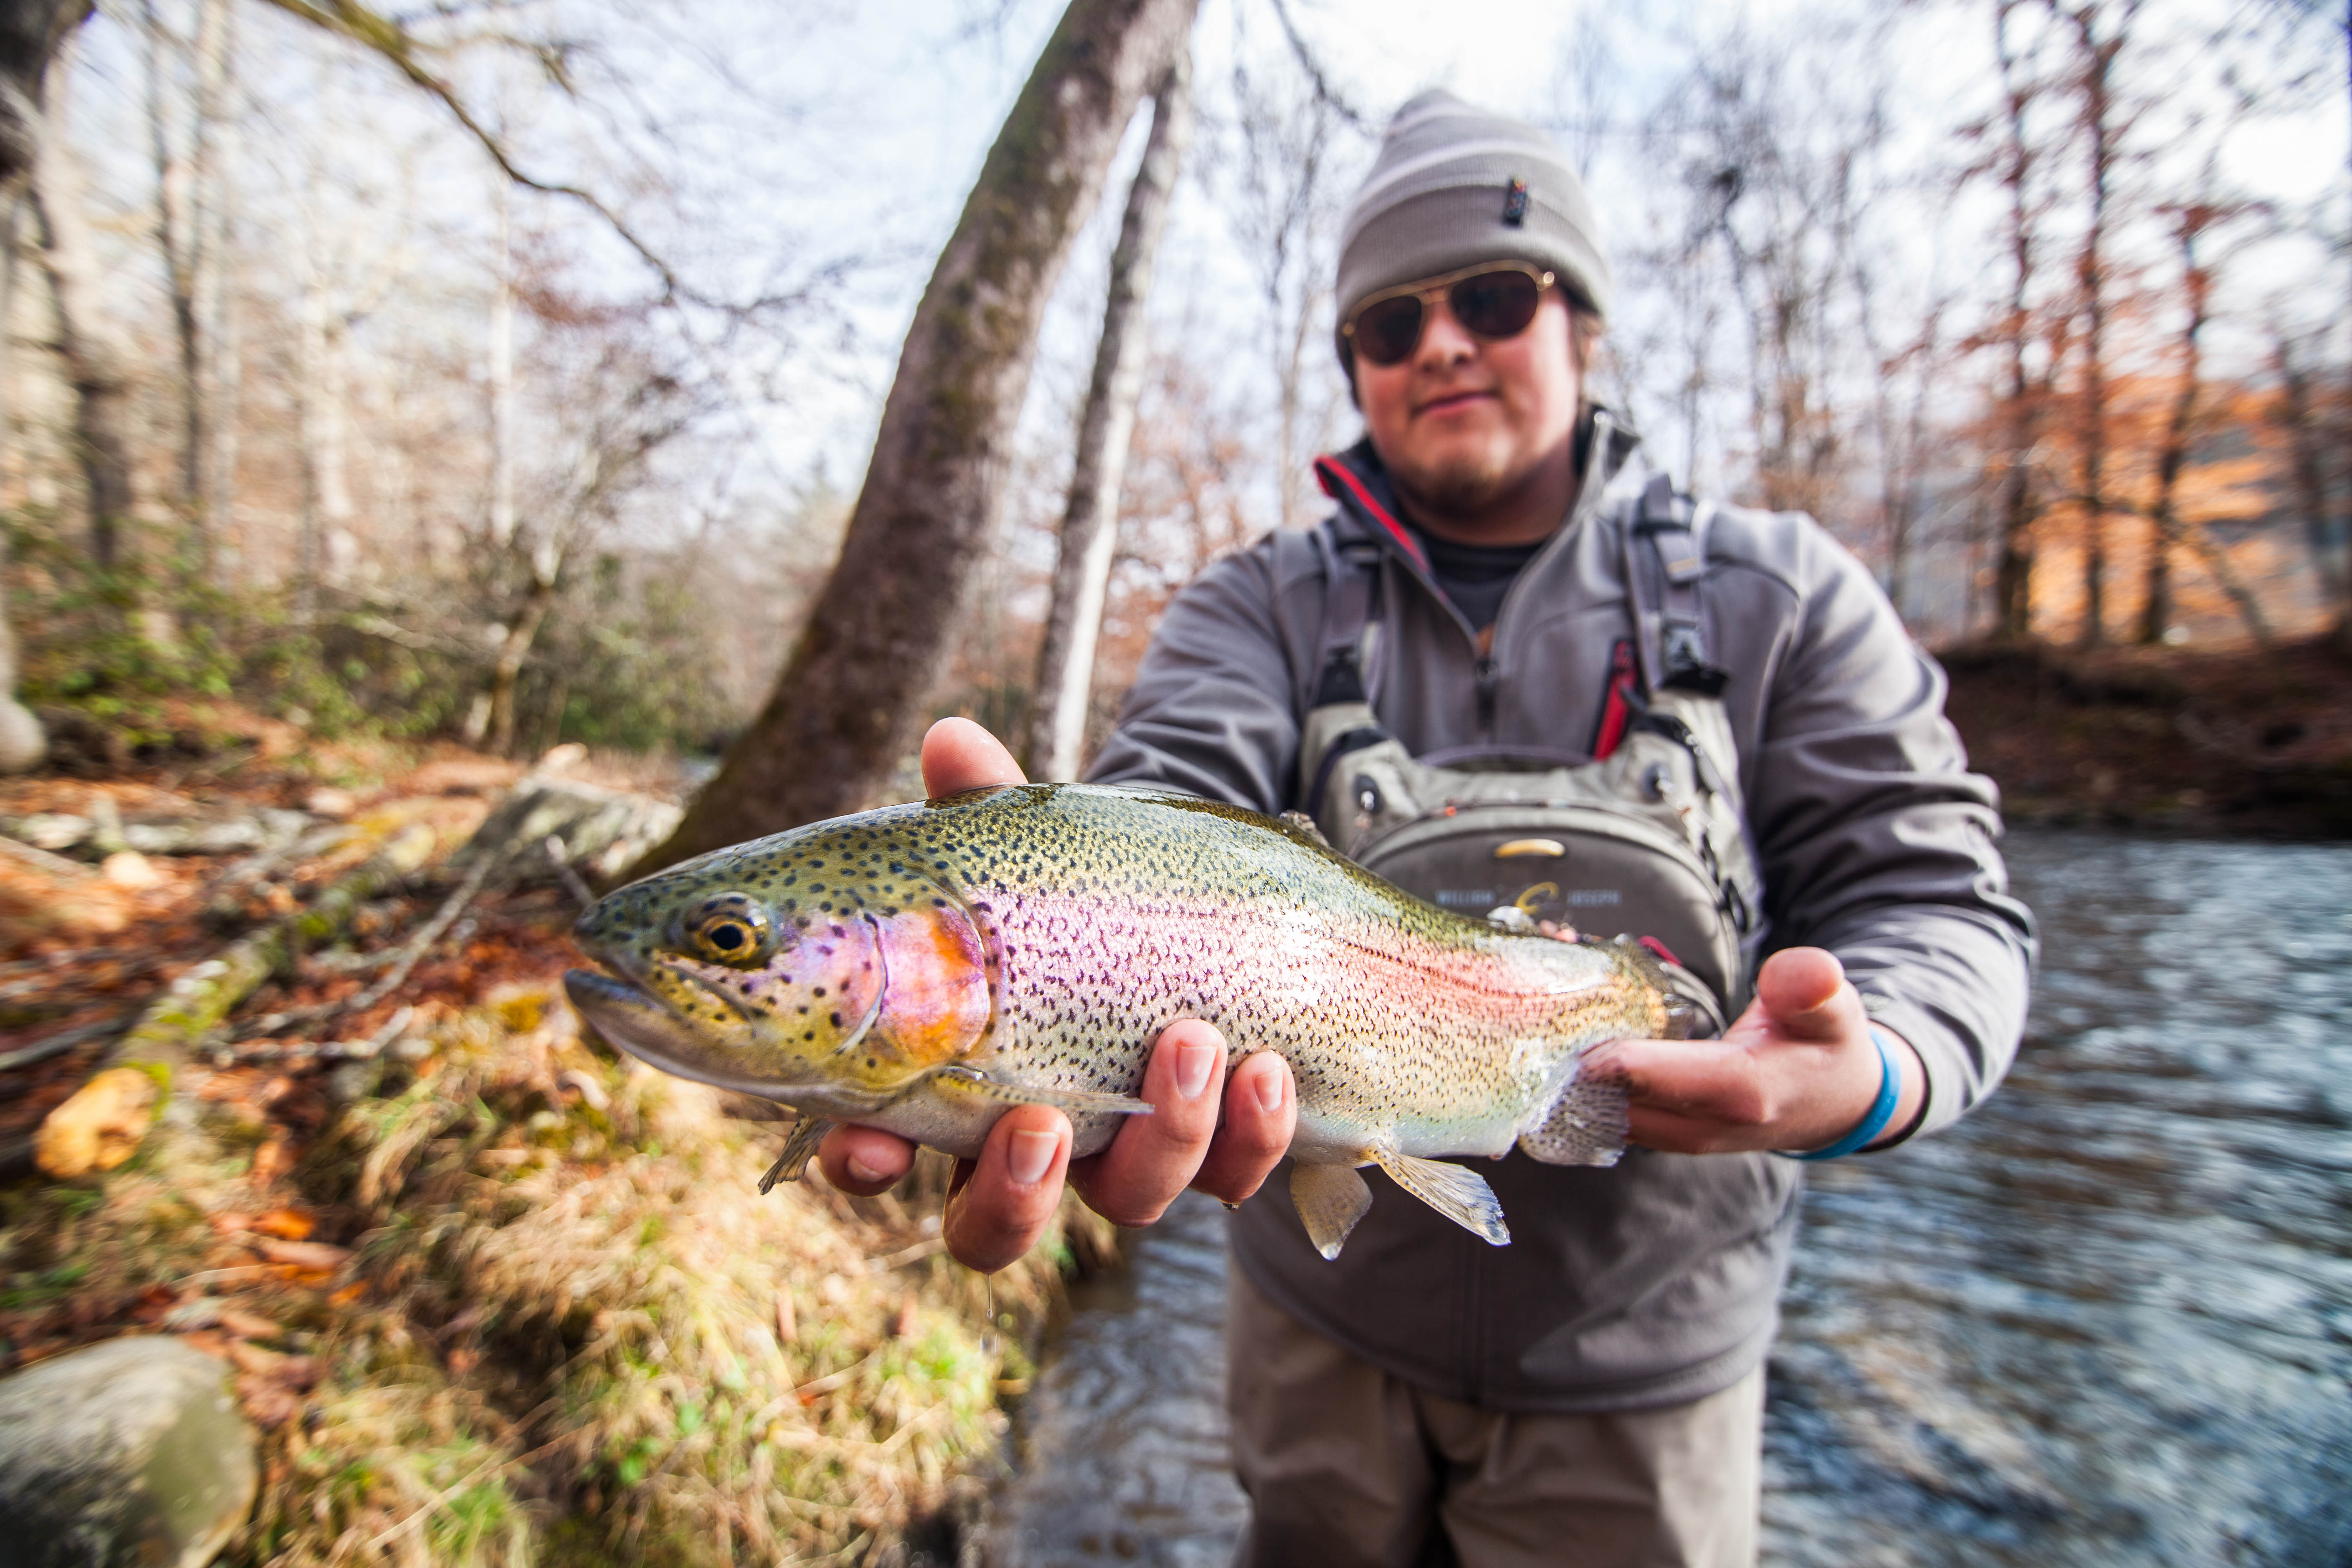 Cherokee s dog days trout tournament offers 10 000 in for Cherokee trout fishing